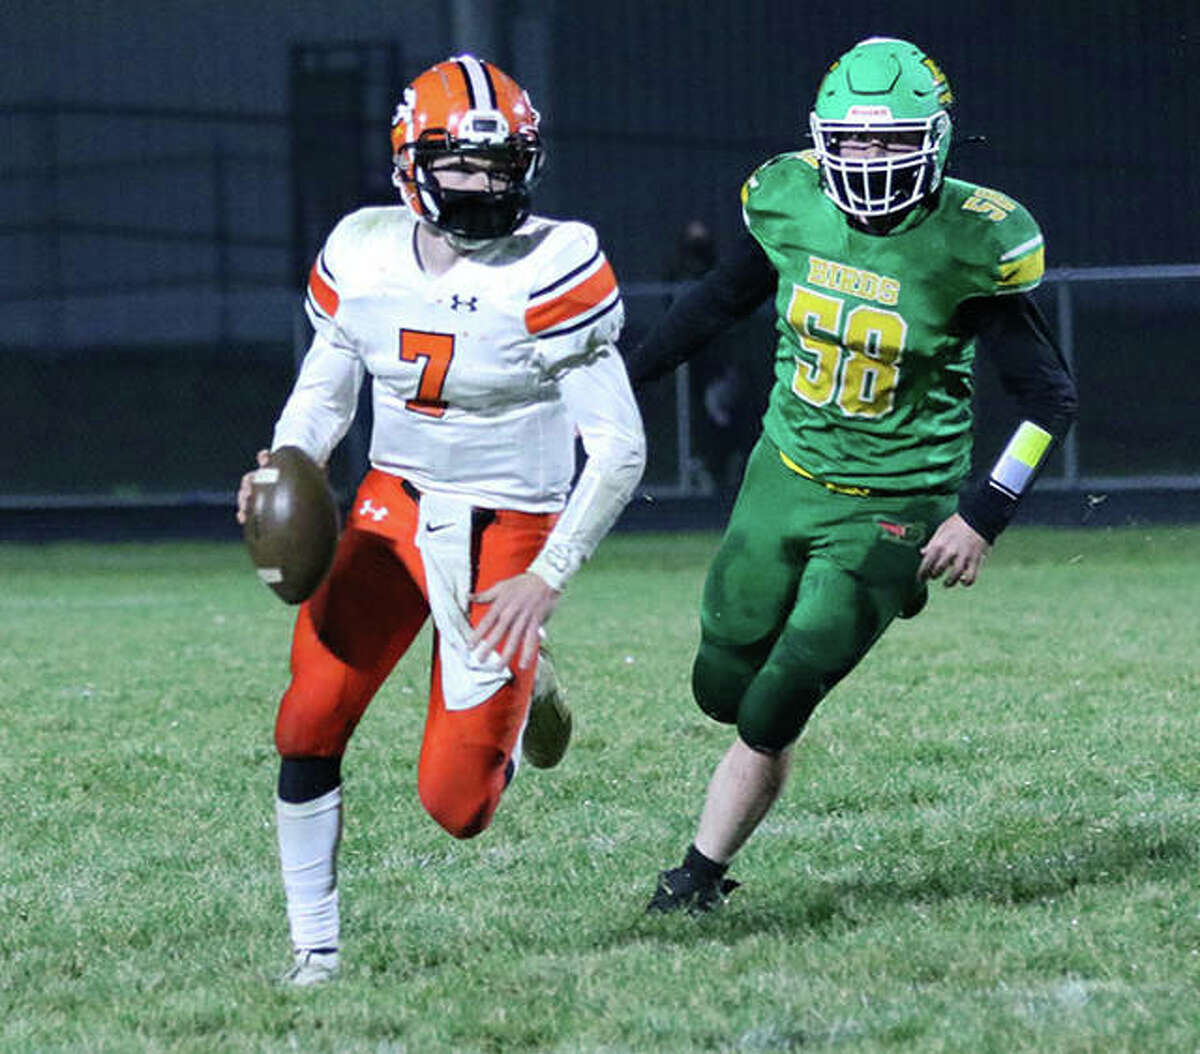 Gillespie quarterback Zach Reiniesch (7) looks for a receiver while Southwestern's Joe Reno gives chase in a SCC football game Friday night at Knapp Field in Piasa.